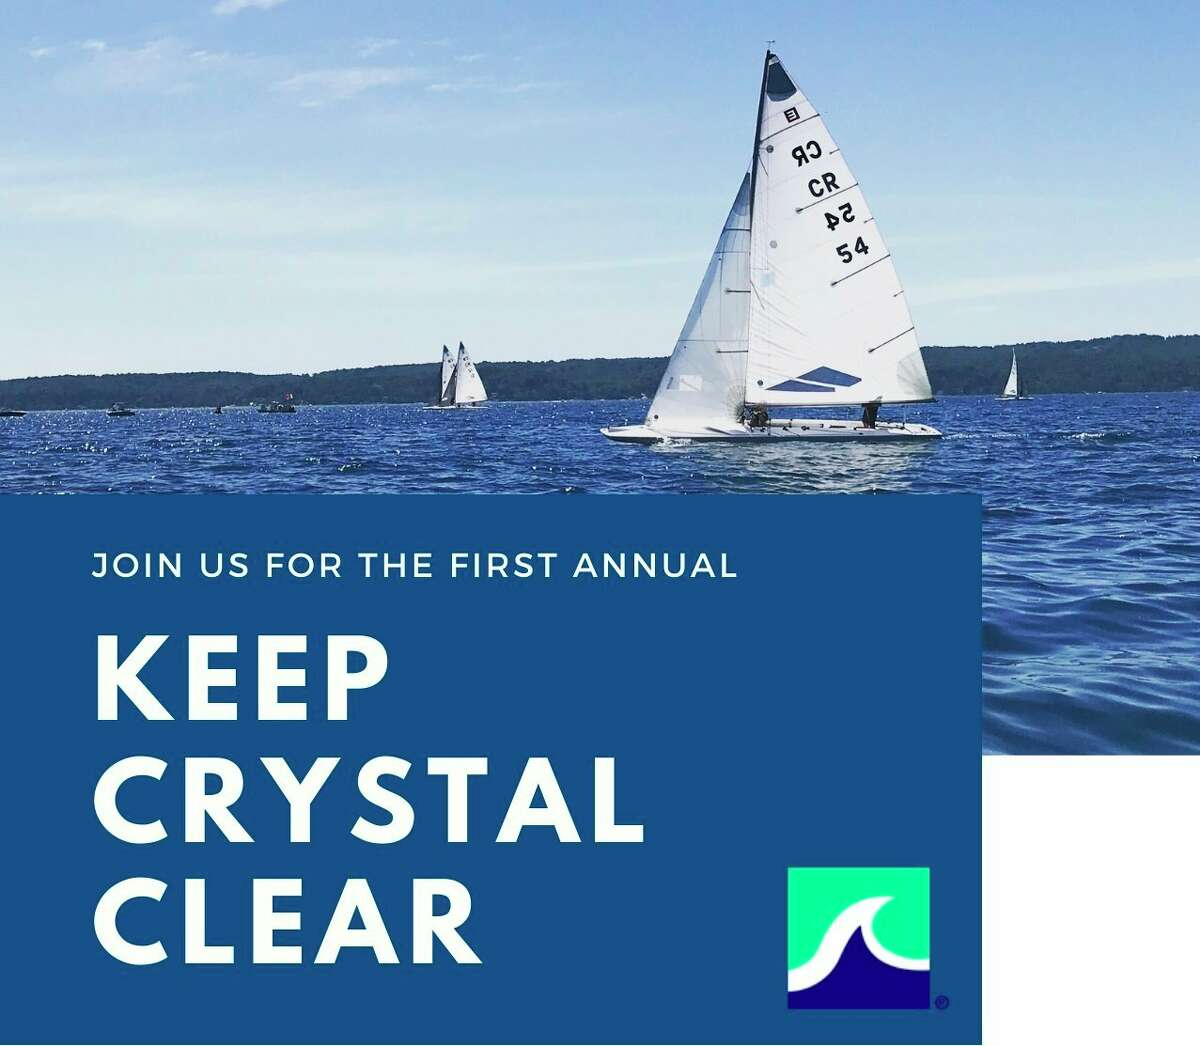 Keep Crystal Clear is the first event of its kind to raise money for the Crystal Lake and Watershed Association. (Courtesy Photo)